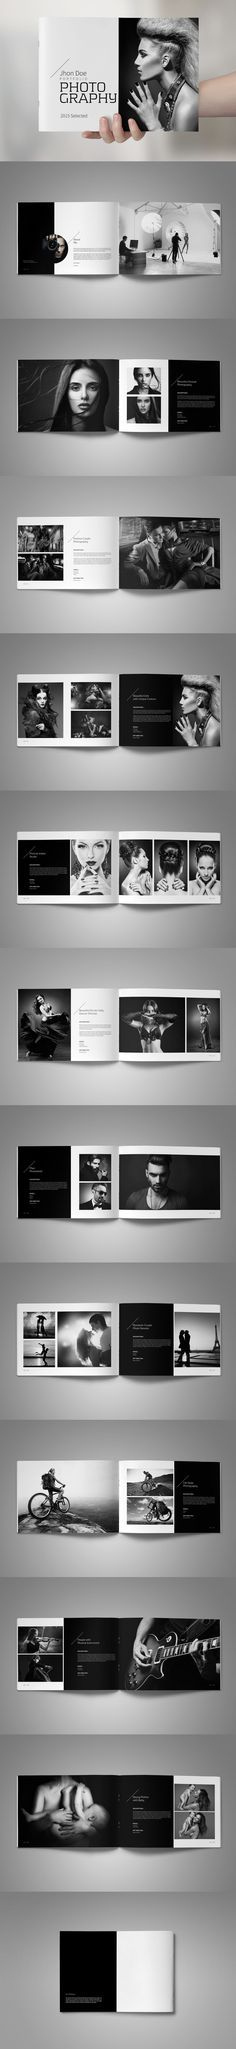 Photography Portfolio Brochure Template InDesign INDD - 24 Pages